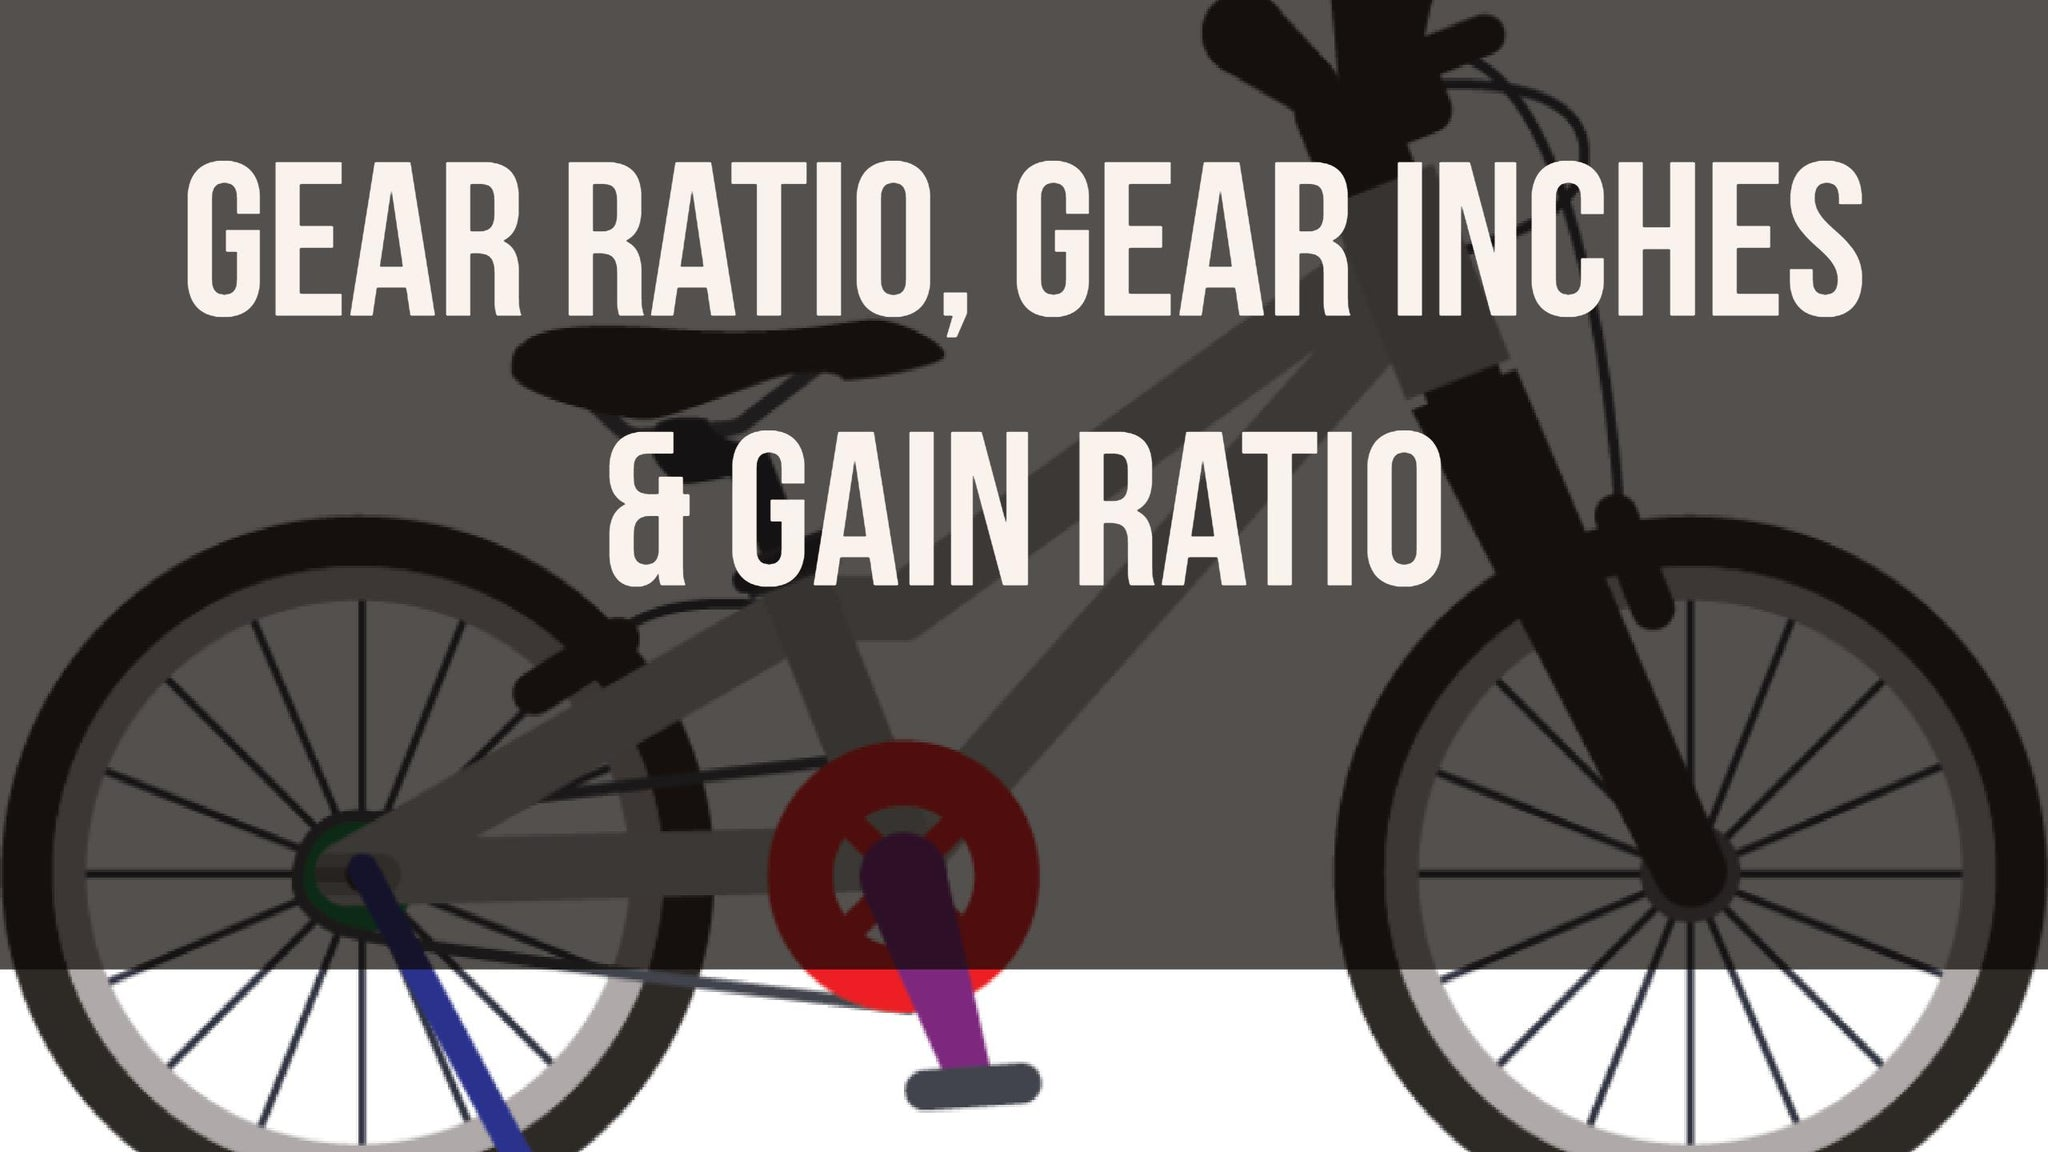 What is the gear ratio